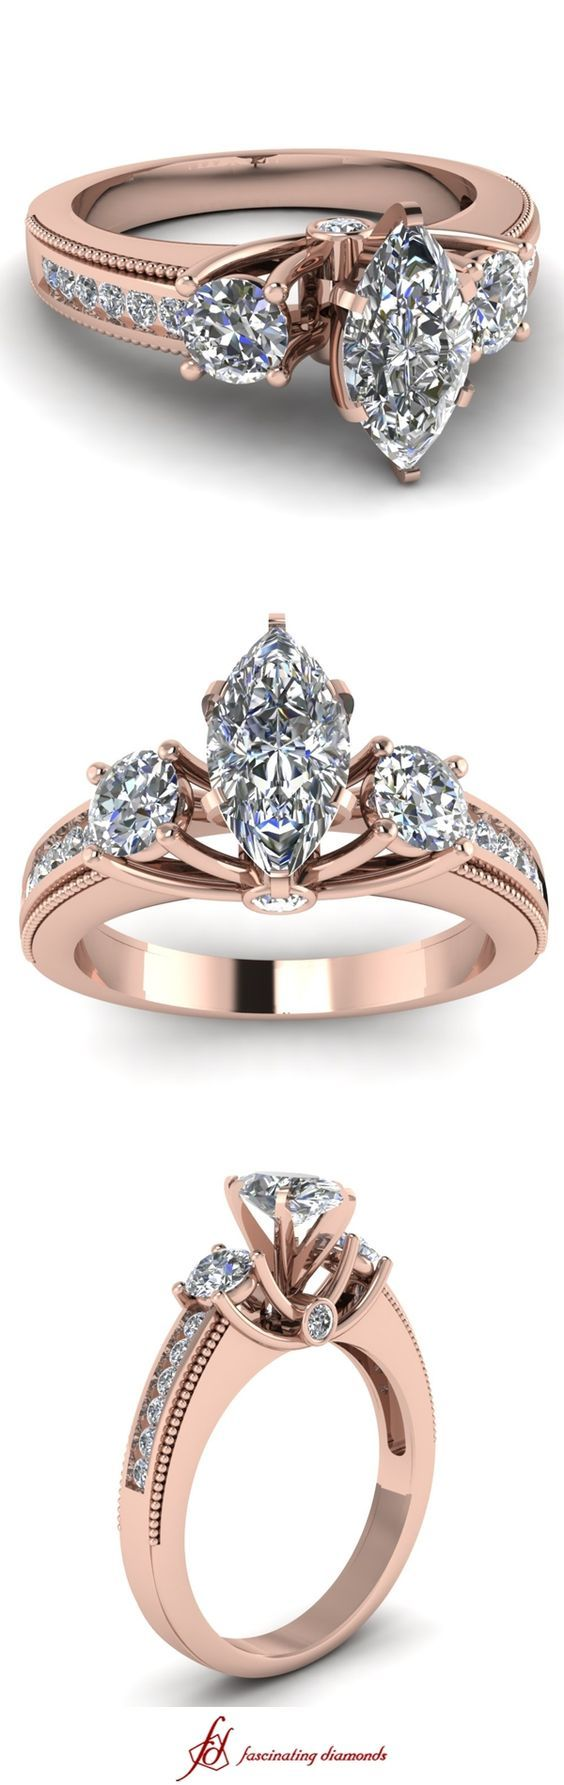 awesome bachelorette of on the details try expensive luxury engagement app ring in most rings